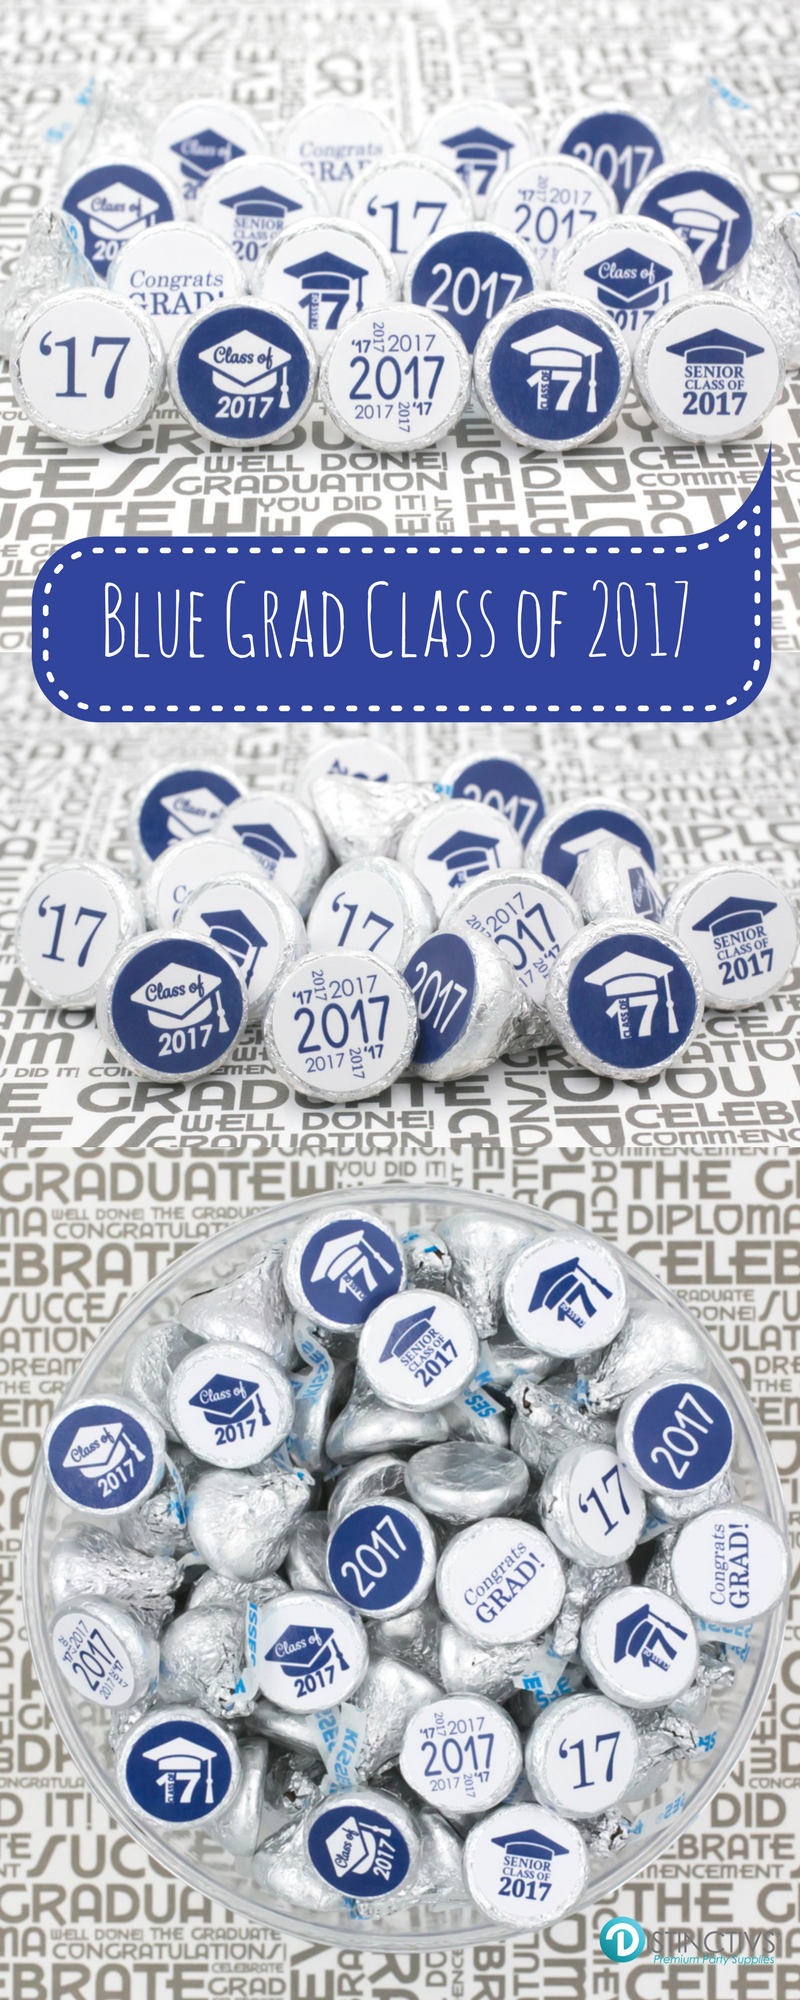 "Each sticker measures 0.75"" in diameter and fits on the bottom of hershey's kisses and many other miniature candies such as lifesaver mints, rolos, miniature peppermint patties and reese's peanut butter cup miniatures. Can also be used as graduation announcement, invitation and thank you card seals."